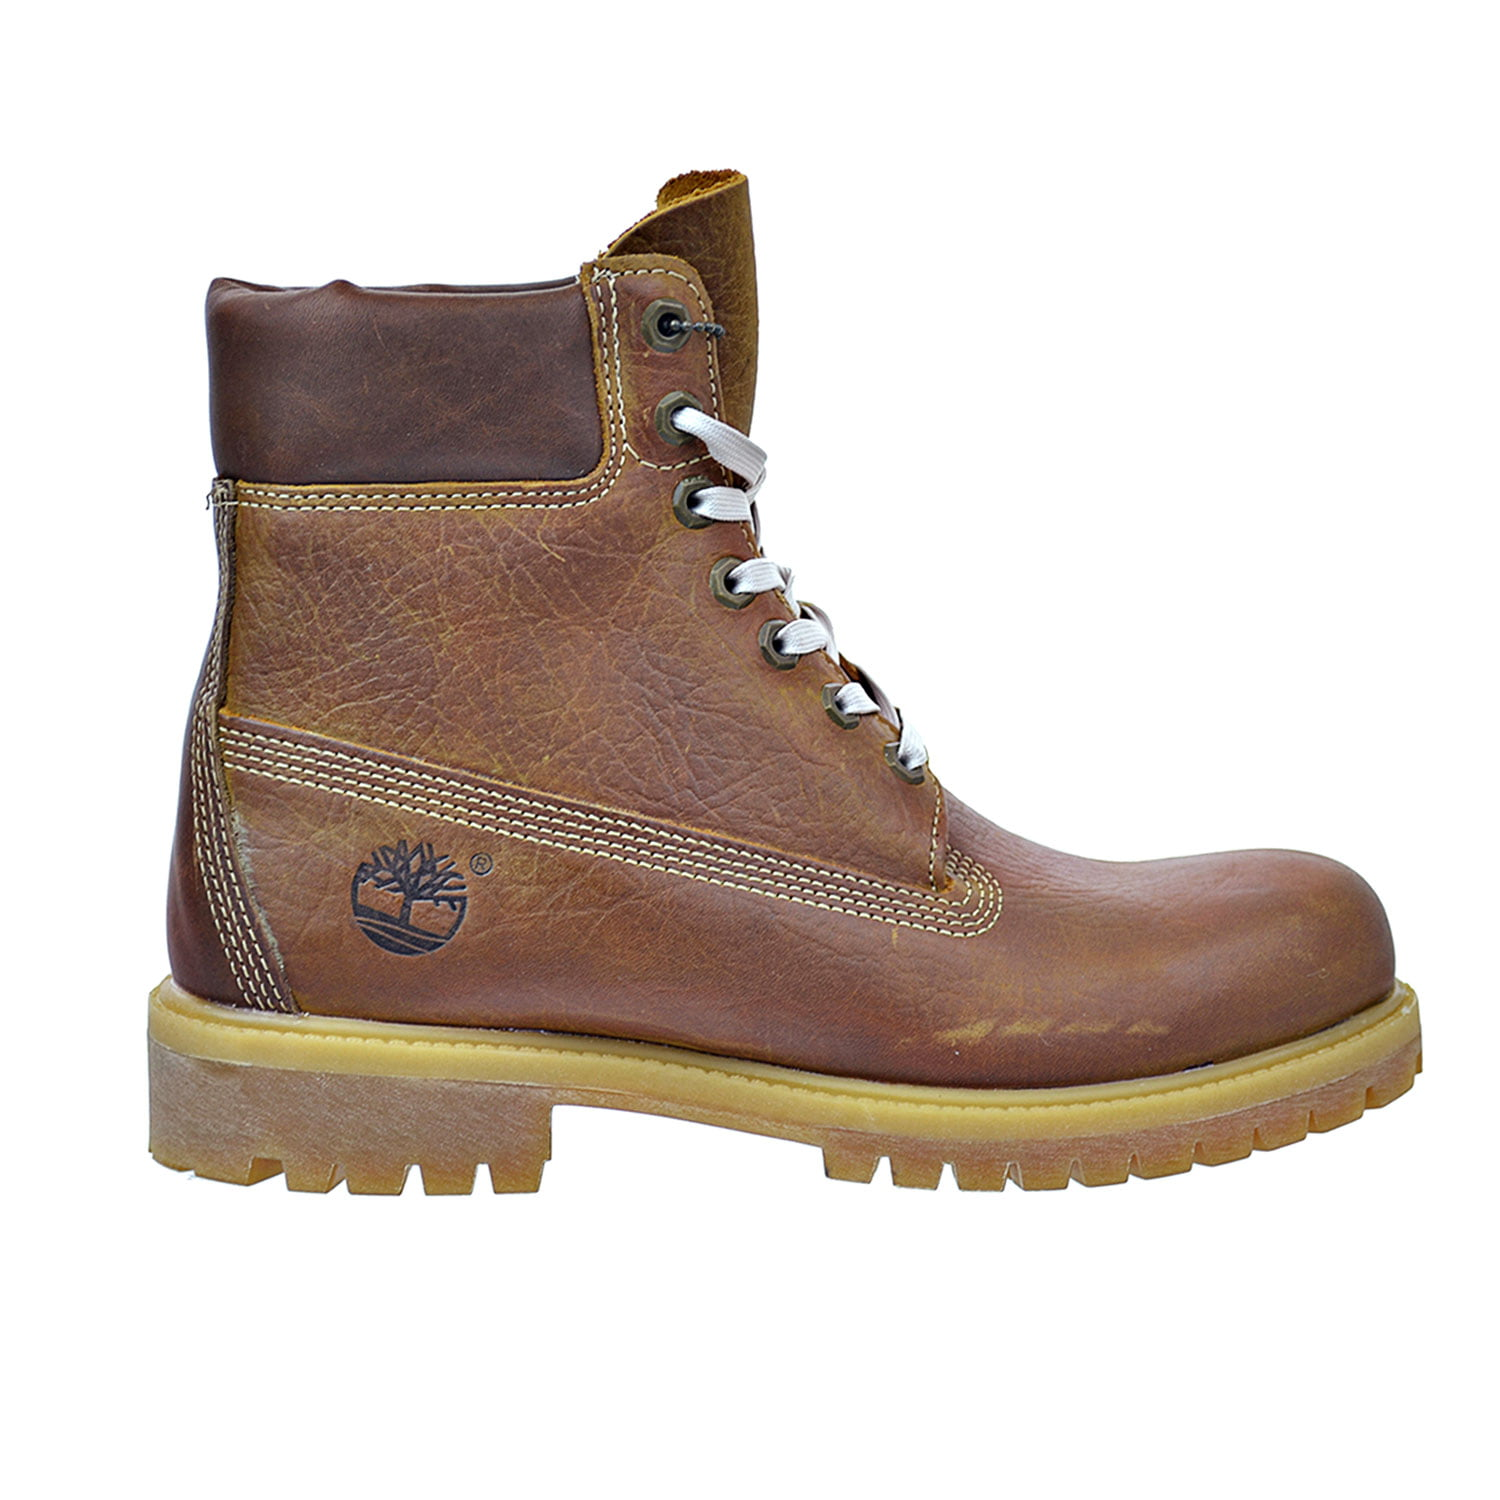 Timberland 6 Inch Premium Waterproof Men's Boots Brown tb0a17lp by Timberland